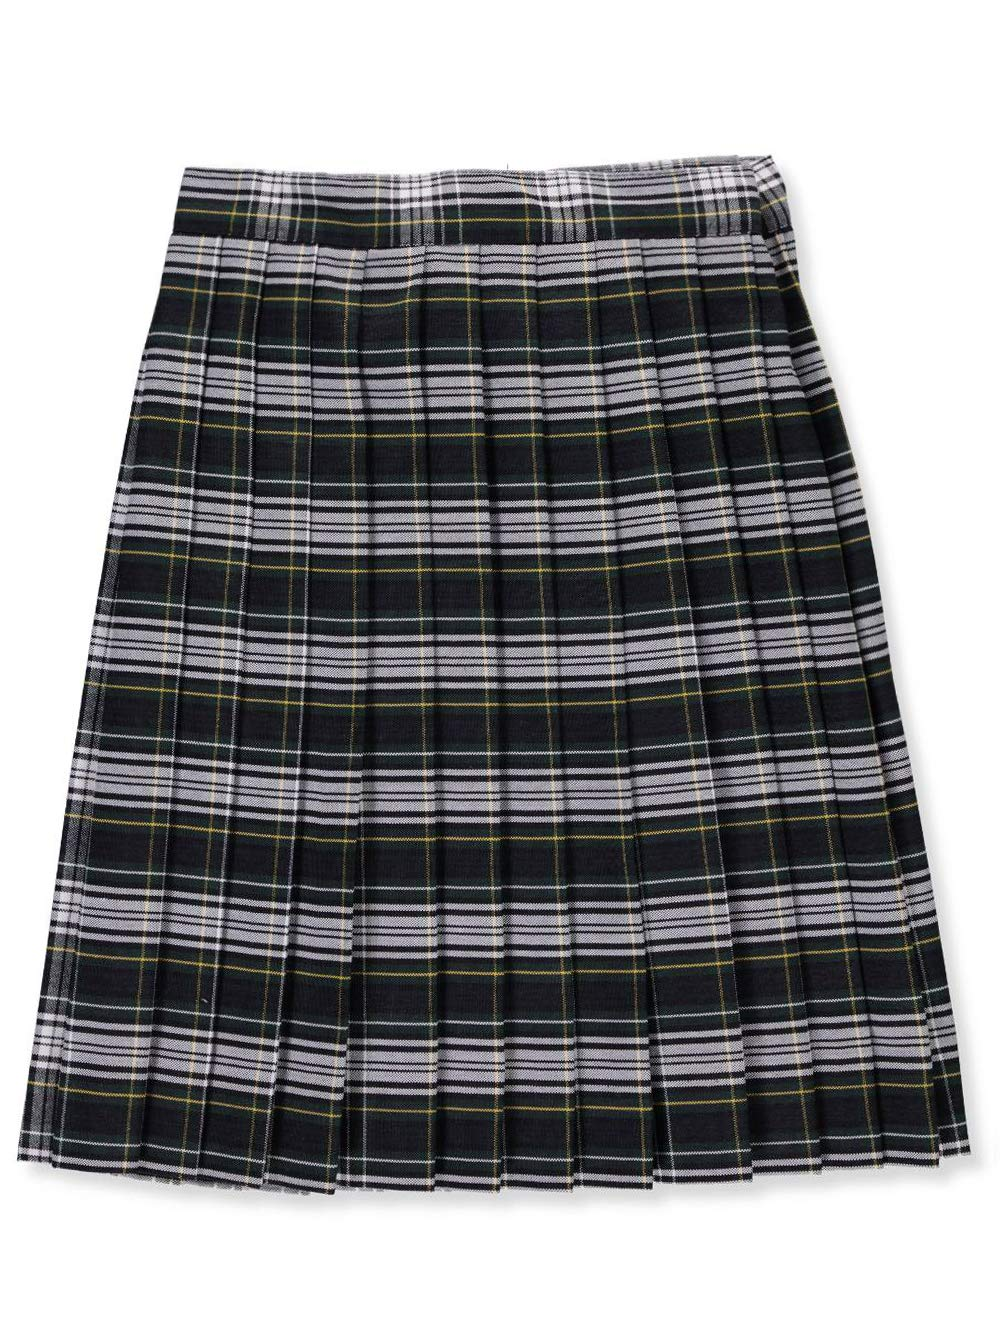 Cookie's Brand Big Girls' Pleated Skirt - Green/White/goldplaid #61, 8